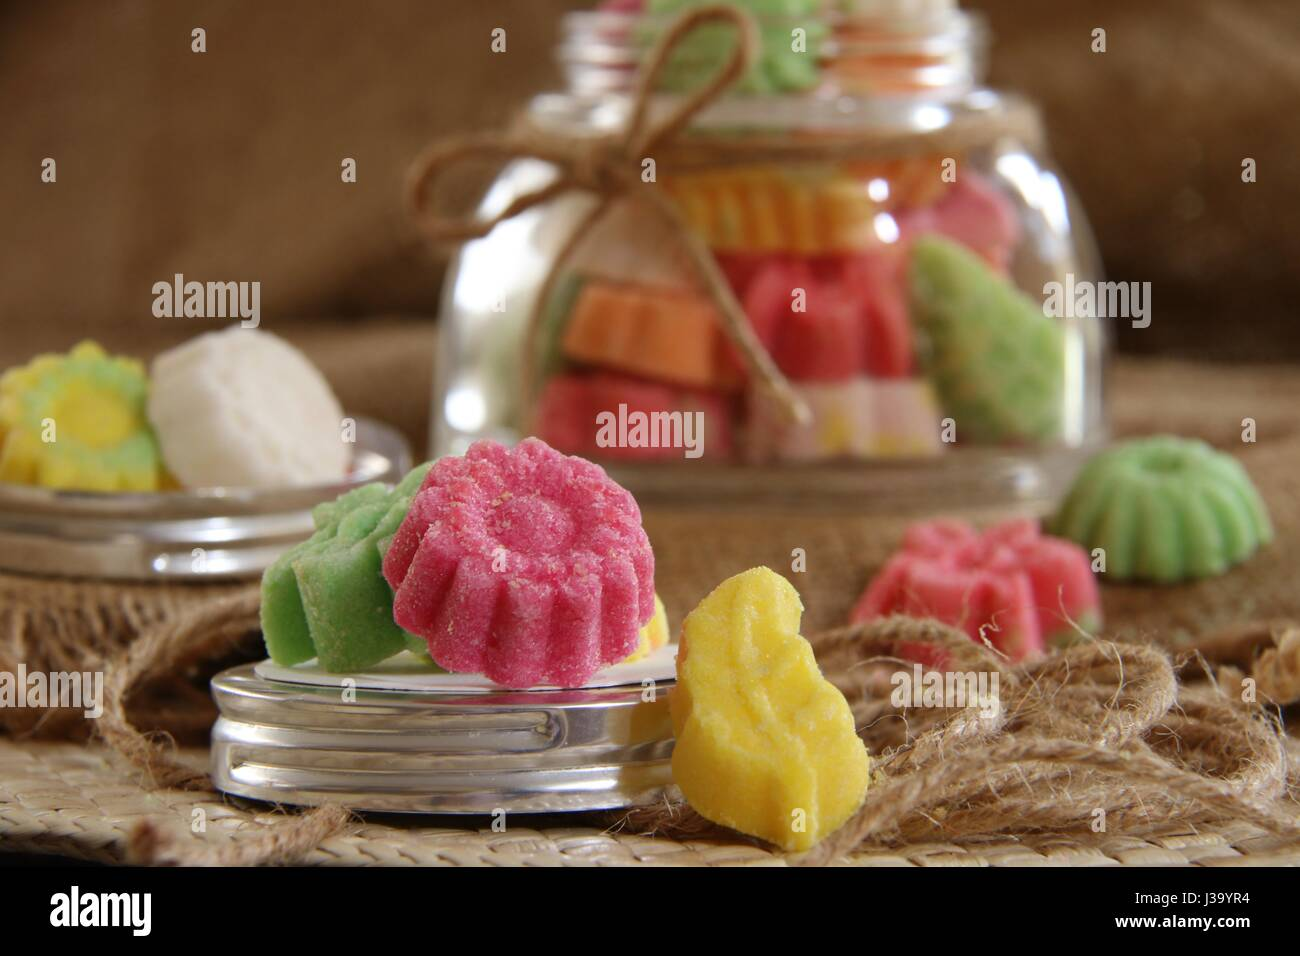 Satru Asem Malang. Citrus candy from Malang, East Java. Stored in a glass jar tied with a ribbon. - Stock Image